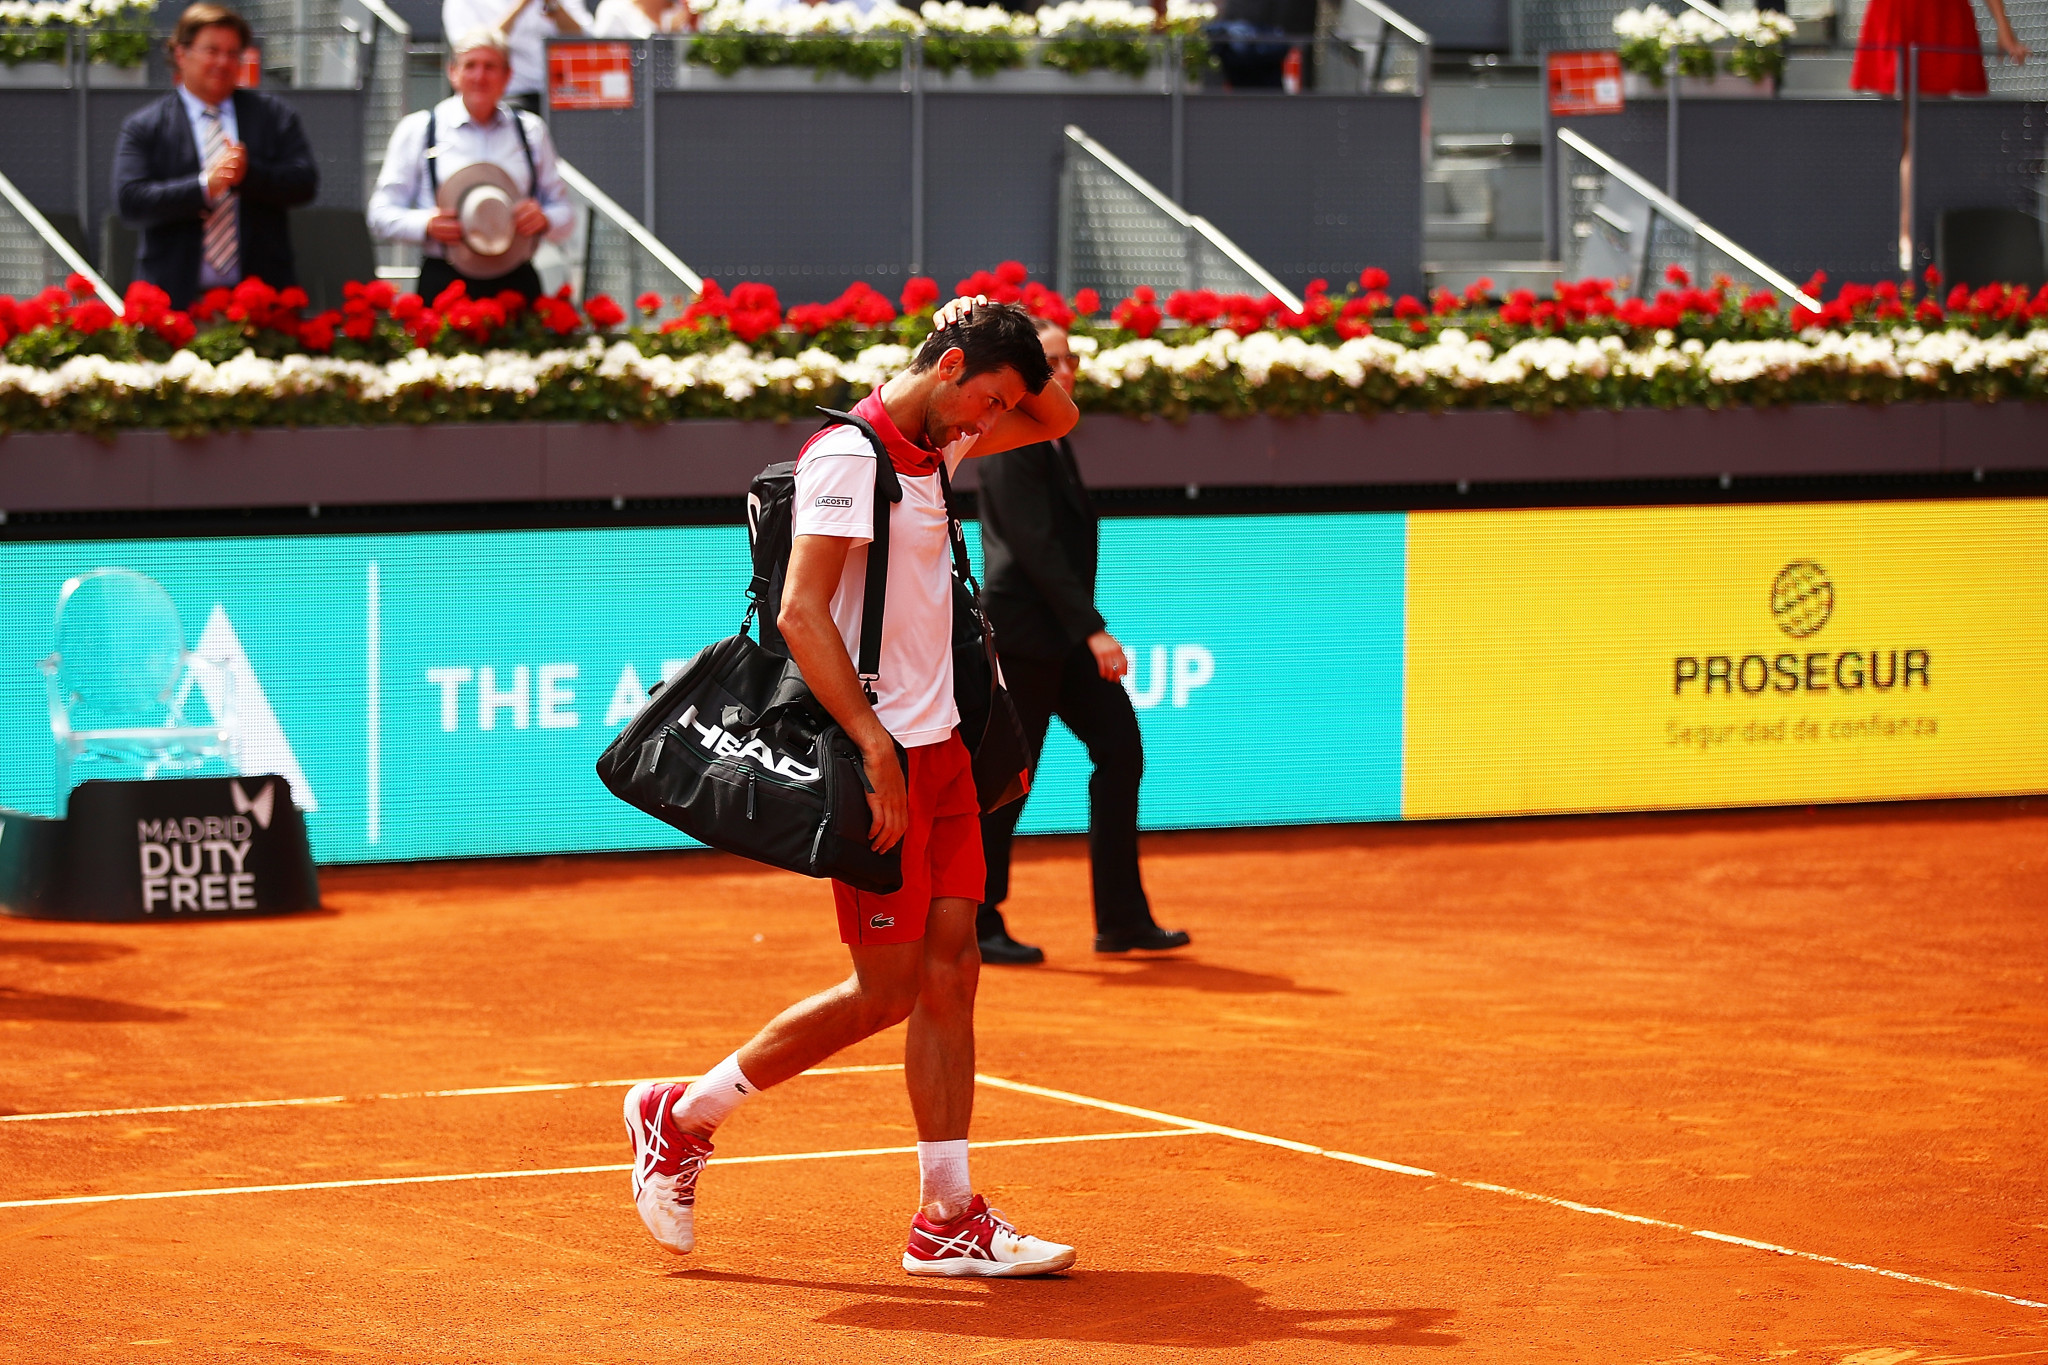 Defending champion Nadal cruises into third round as Djokovic suffers defeat at Mutua Madrid Open